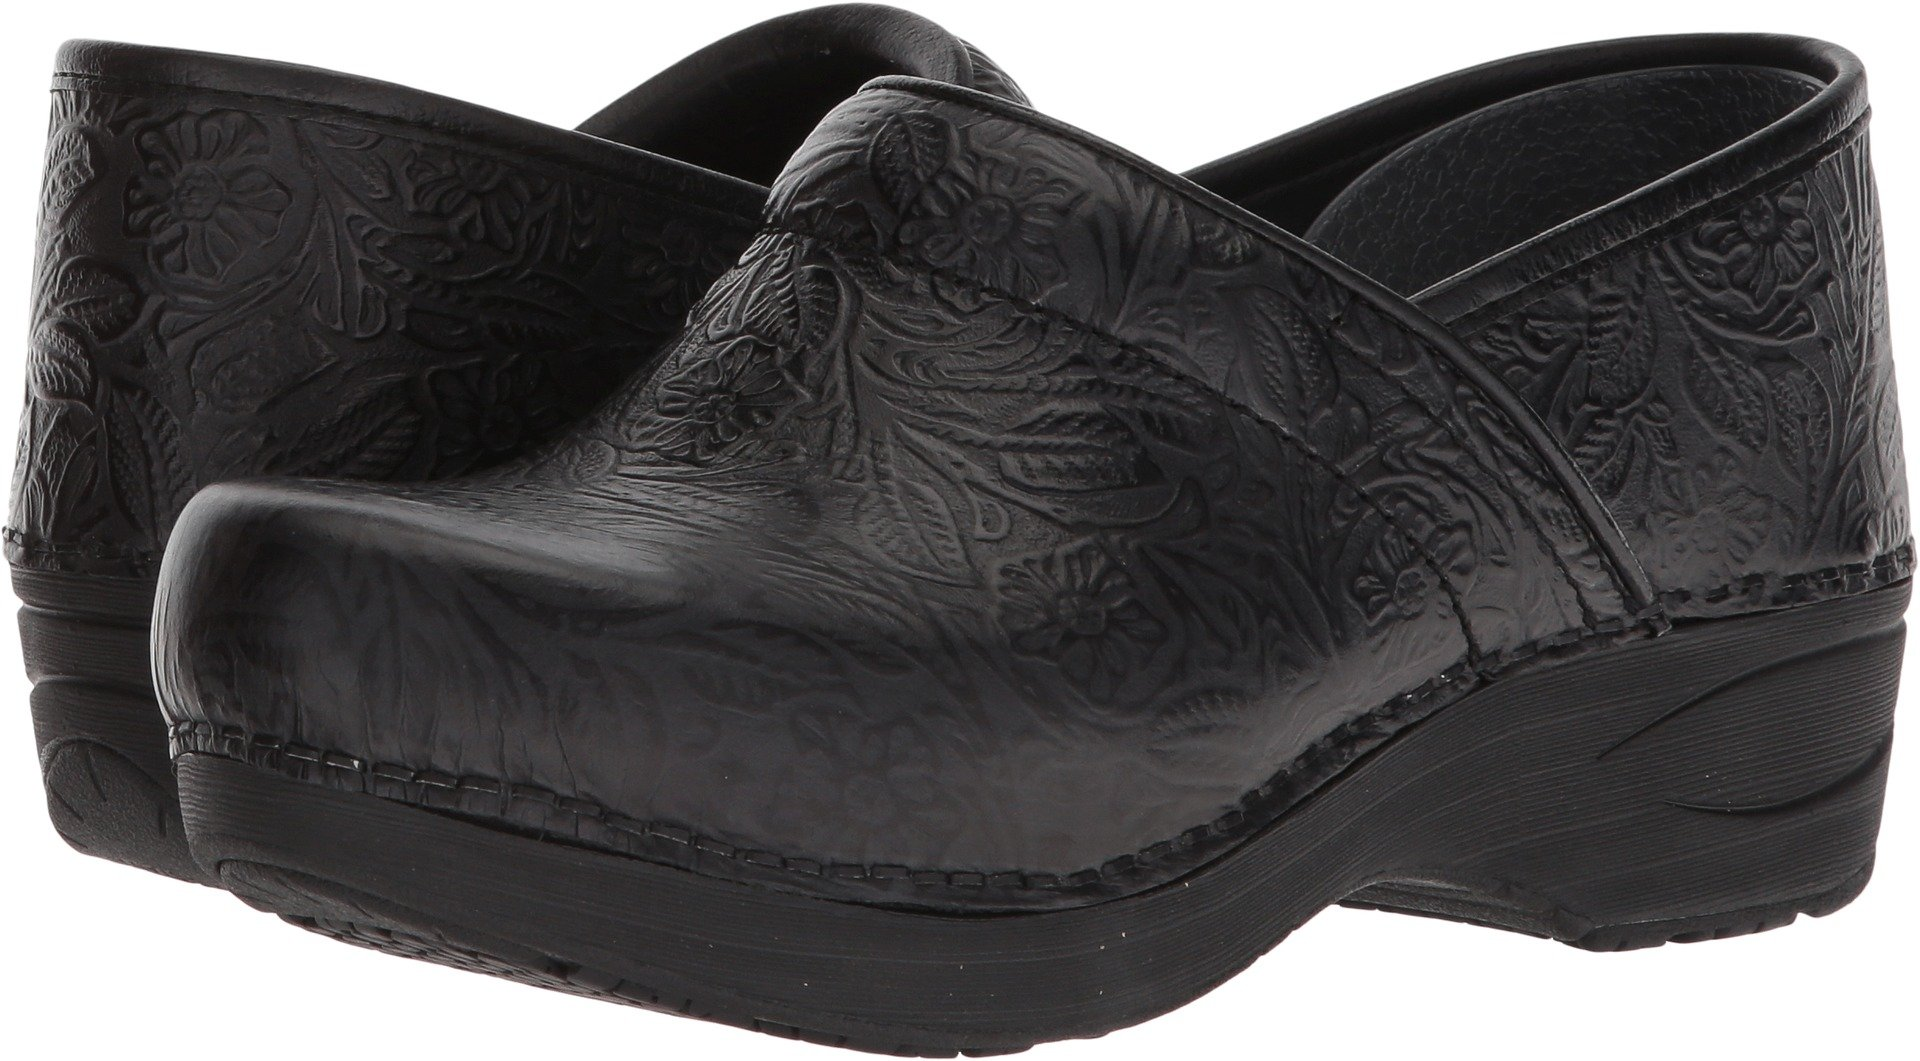 Dansko Women's XP 2.0 Clog Black Floral Tooled 38 Medium EU (7.5-8 US)